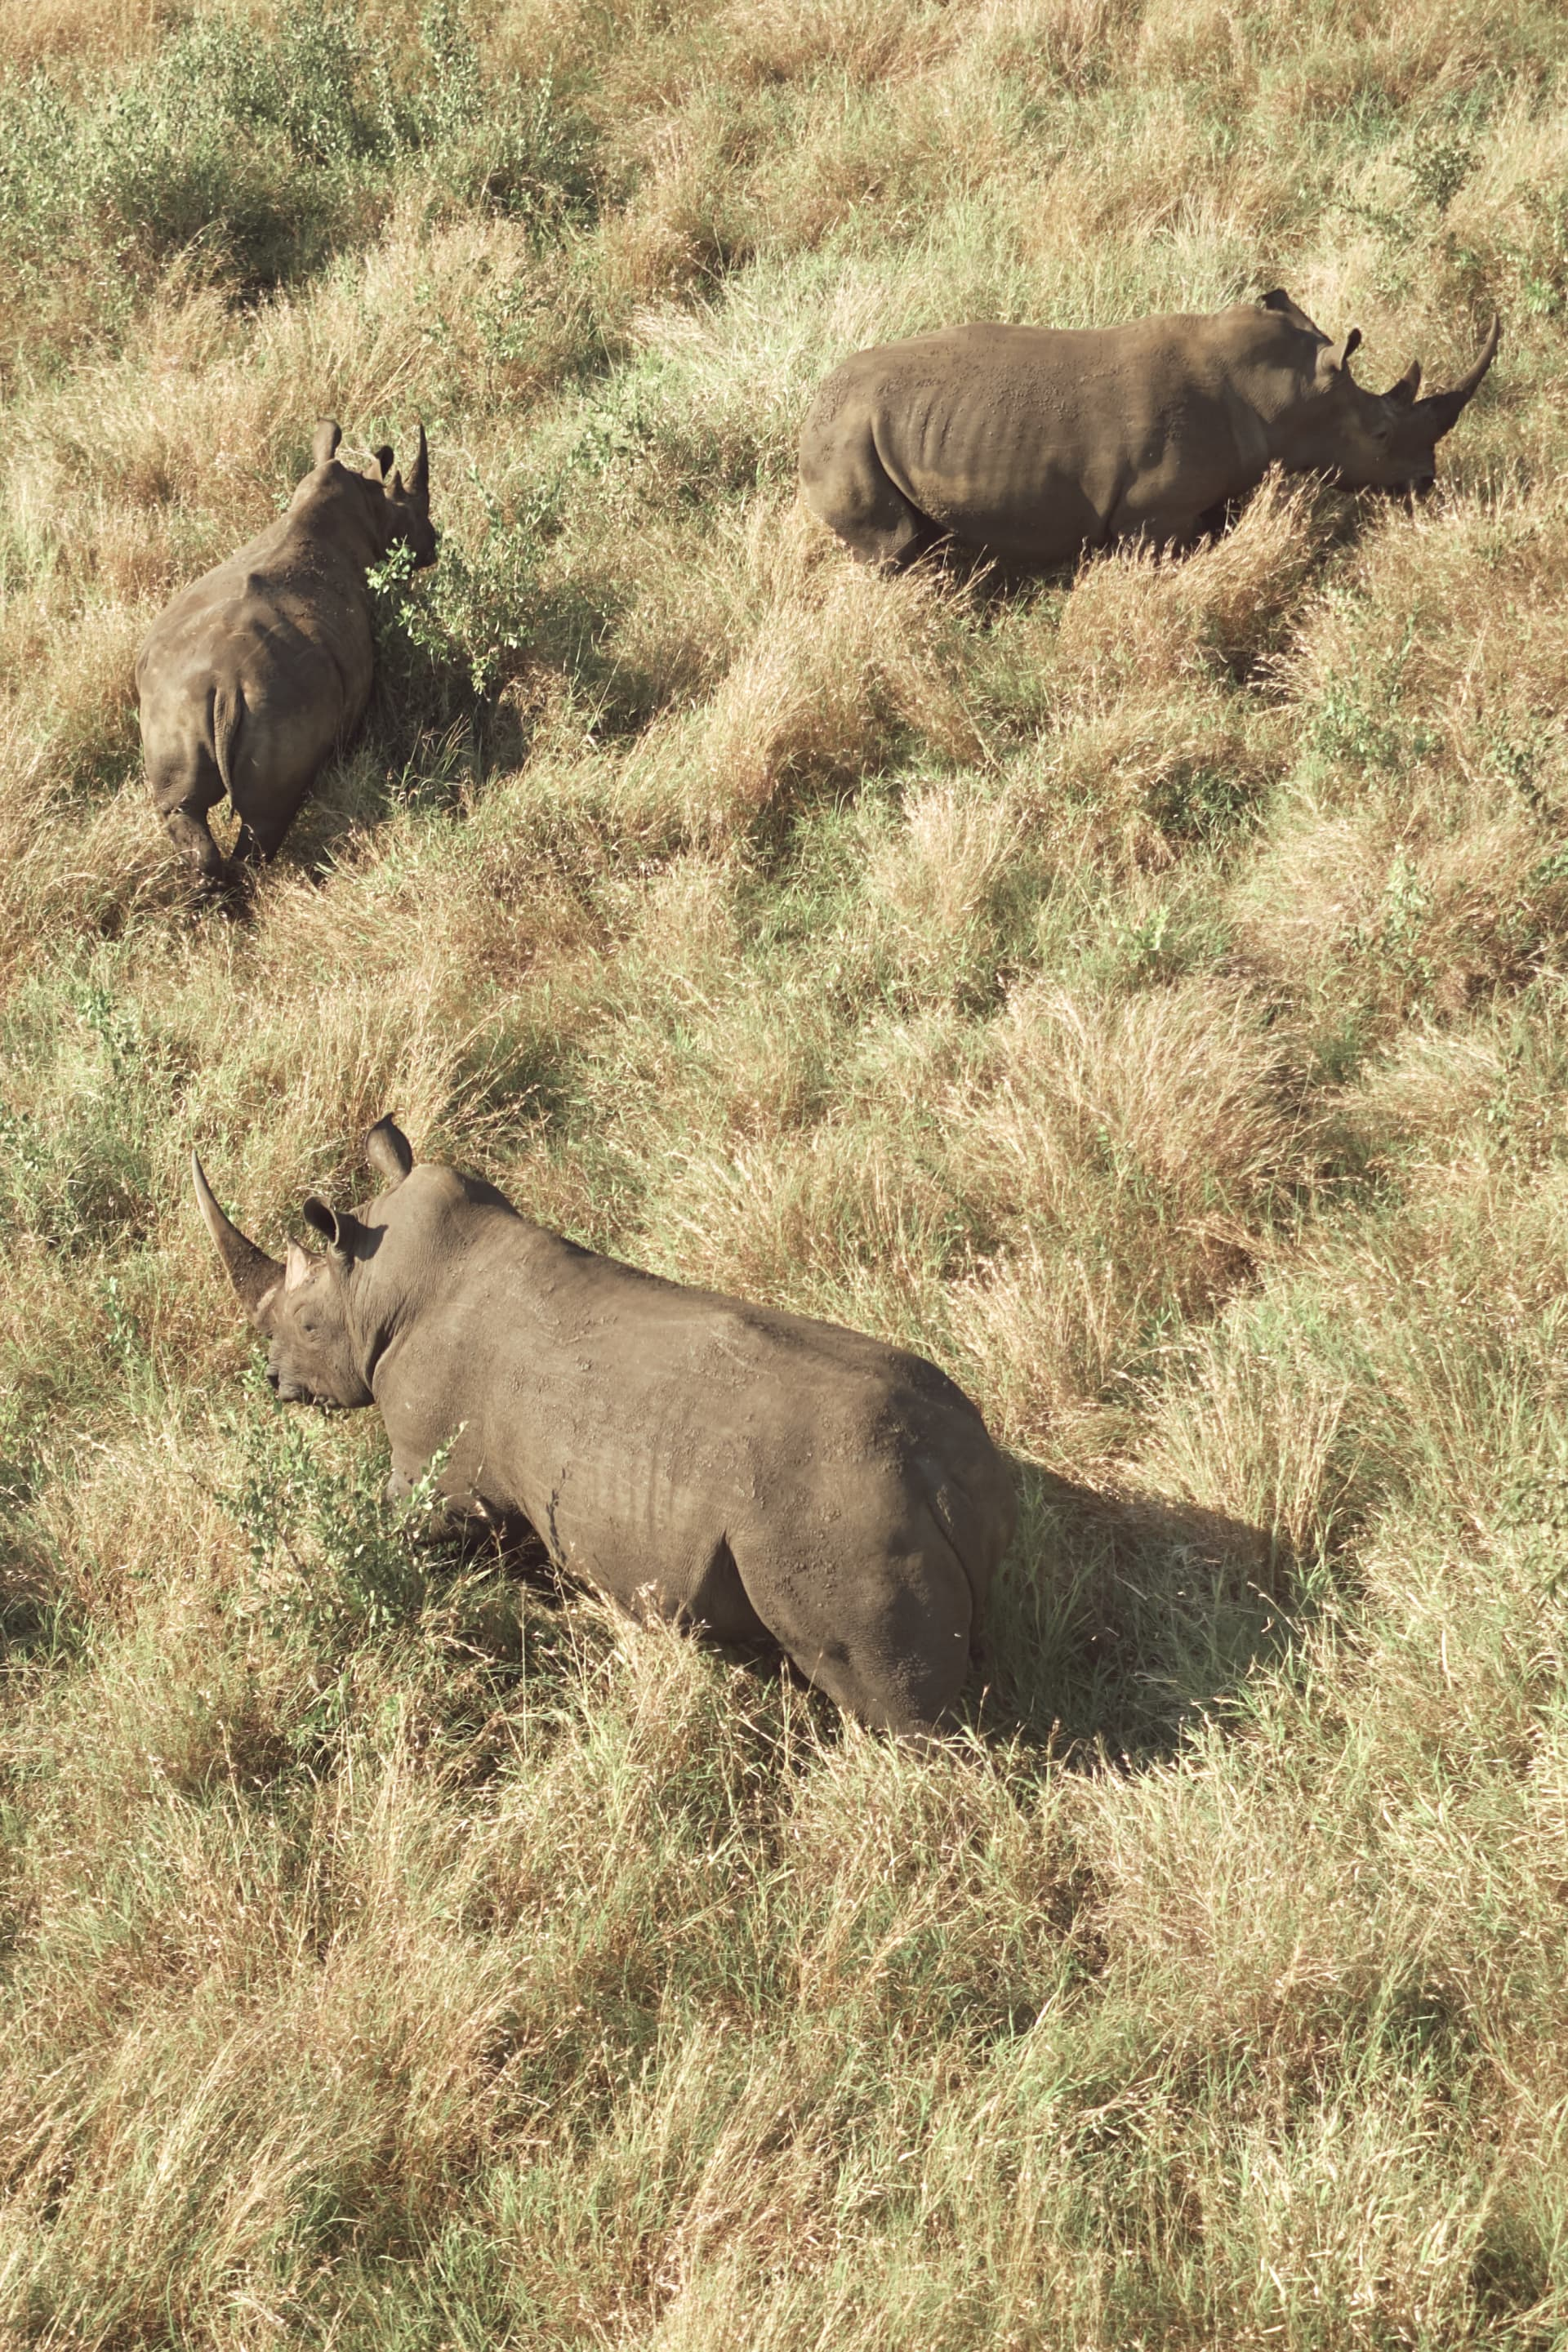 Healthy and safe, our white rhino rejoins his party.